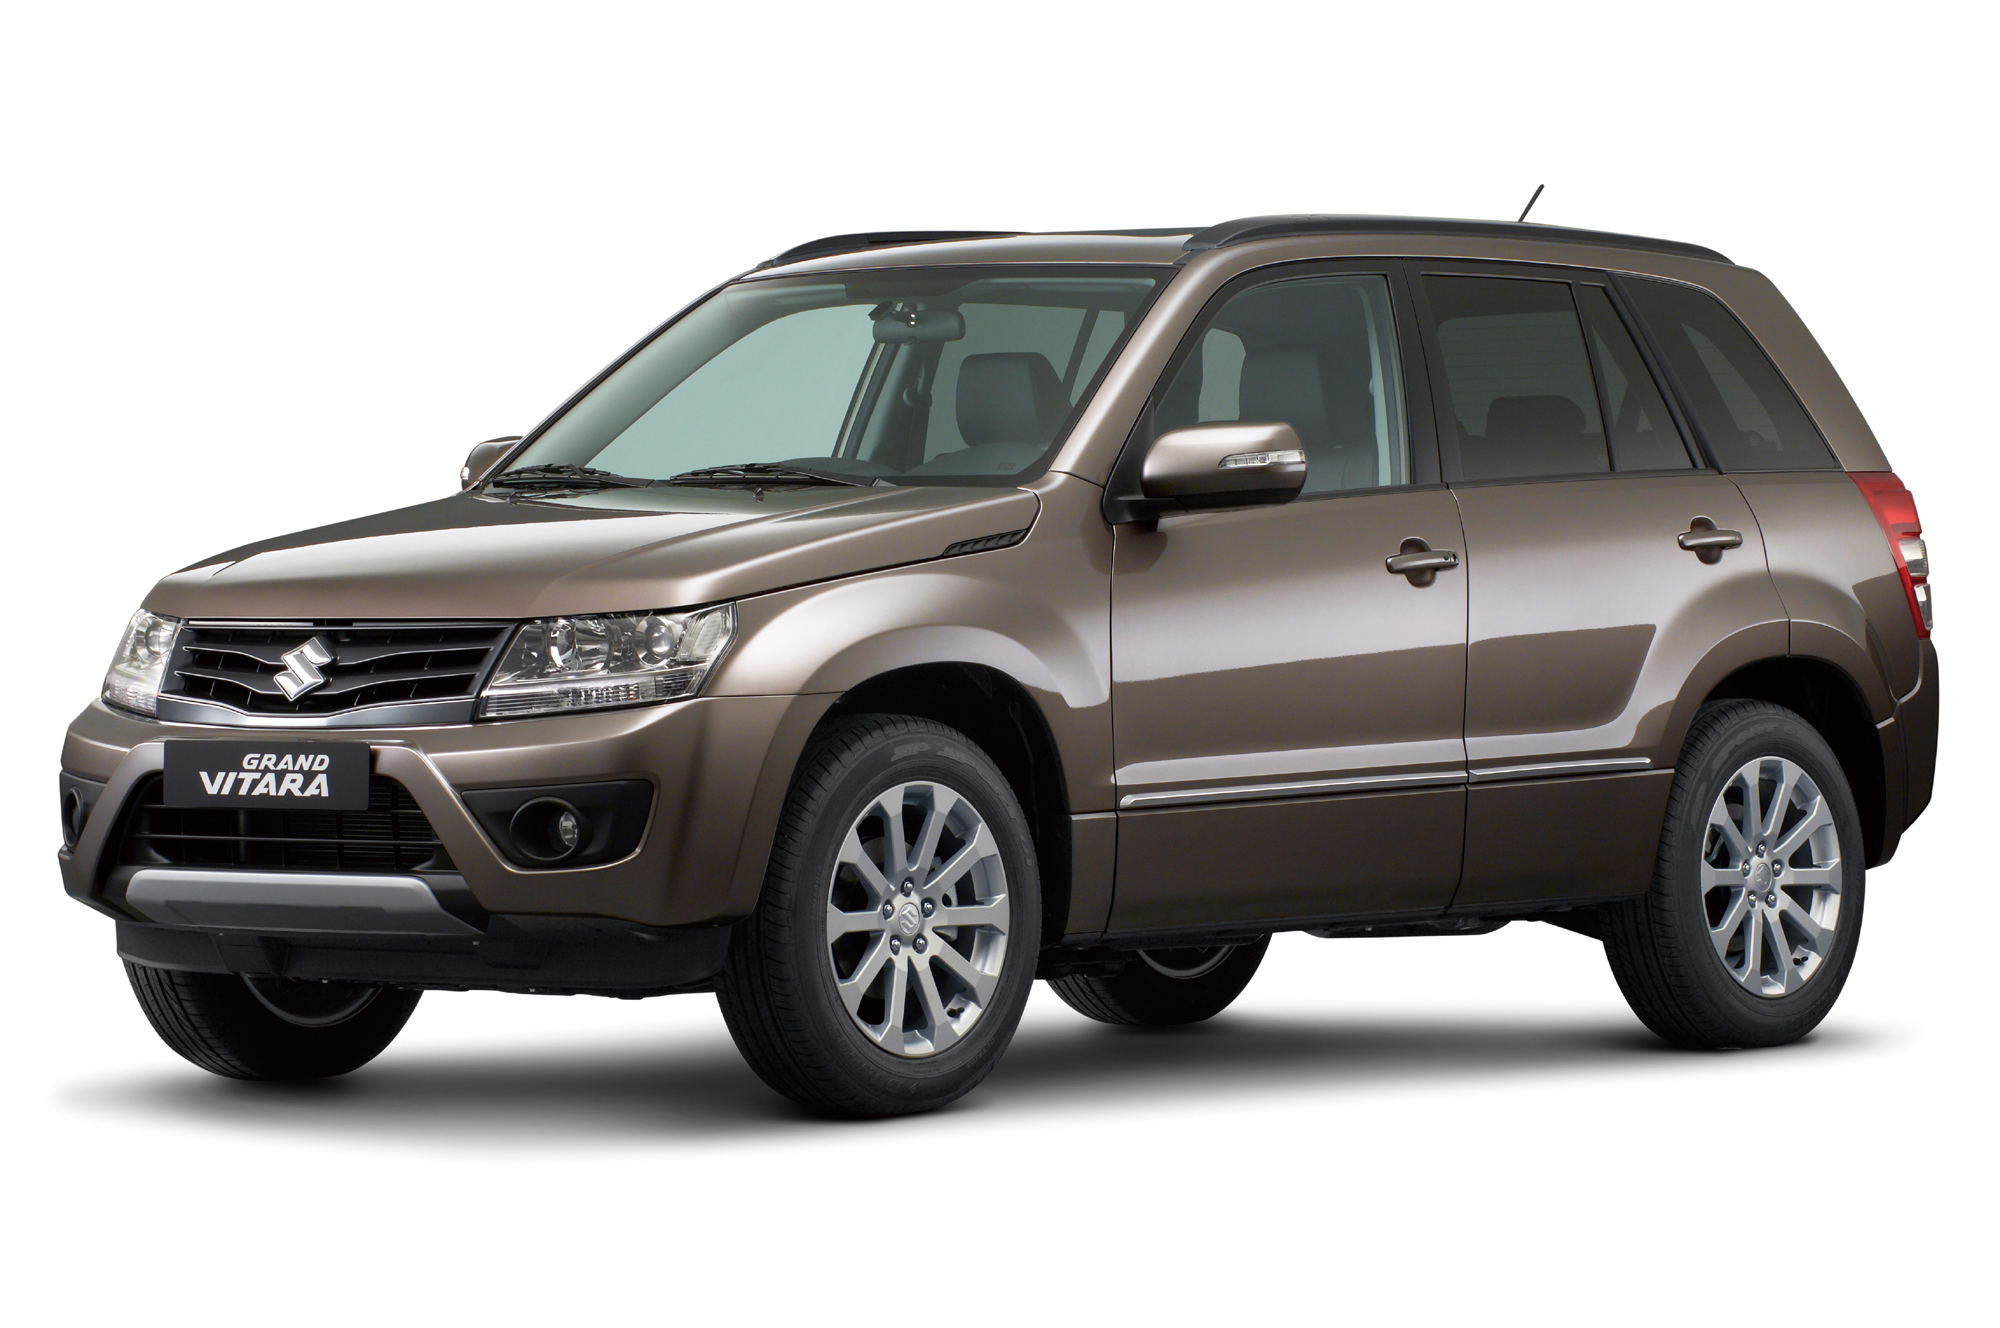 2013 Suzuki Grand Vitara Review Ratings Specs Prices